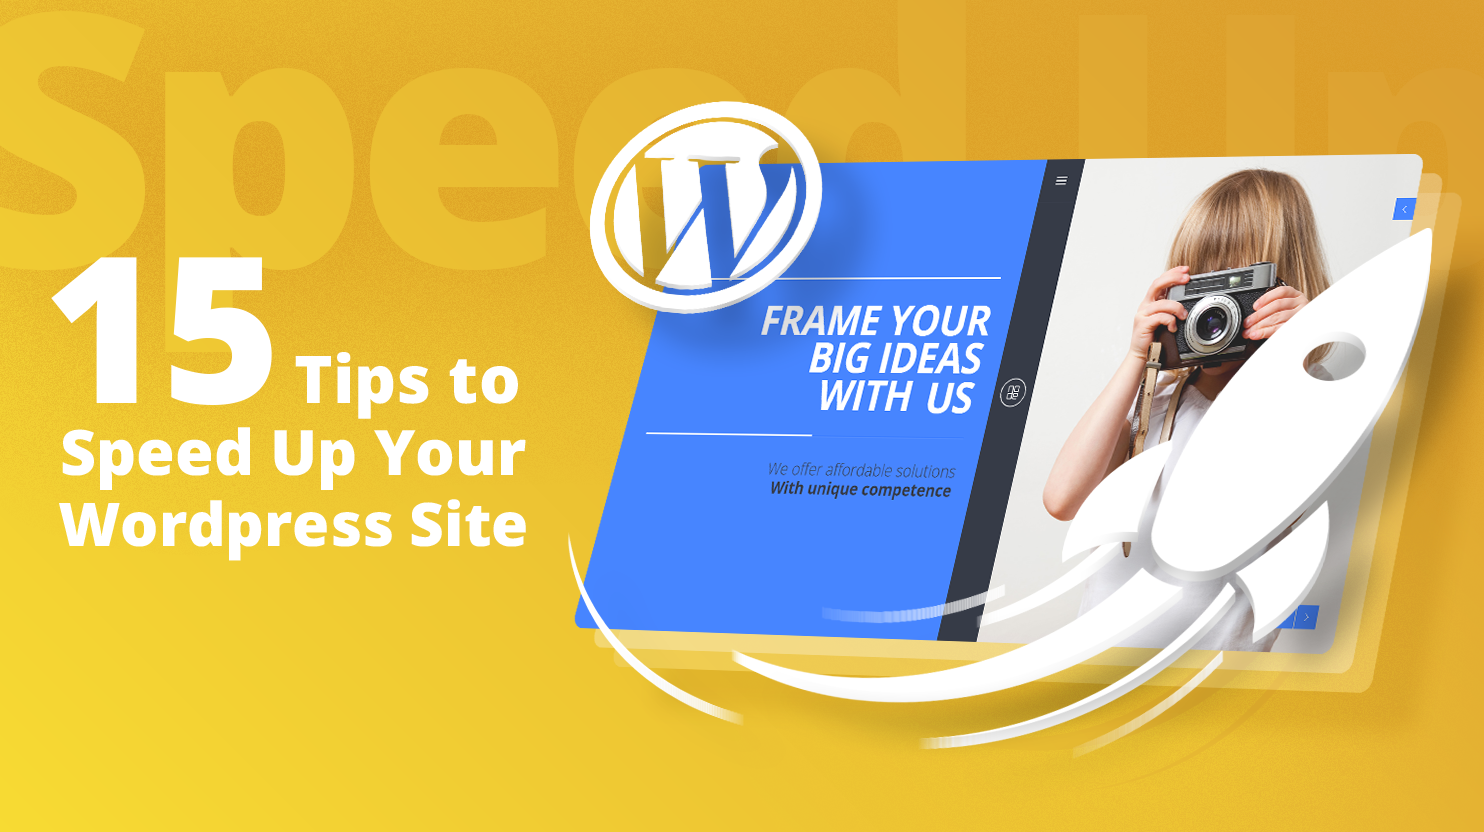 15-Tips-to-Speed-up-Your-Wordpress-Site